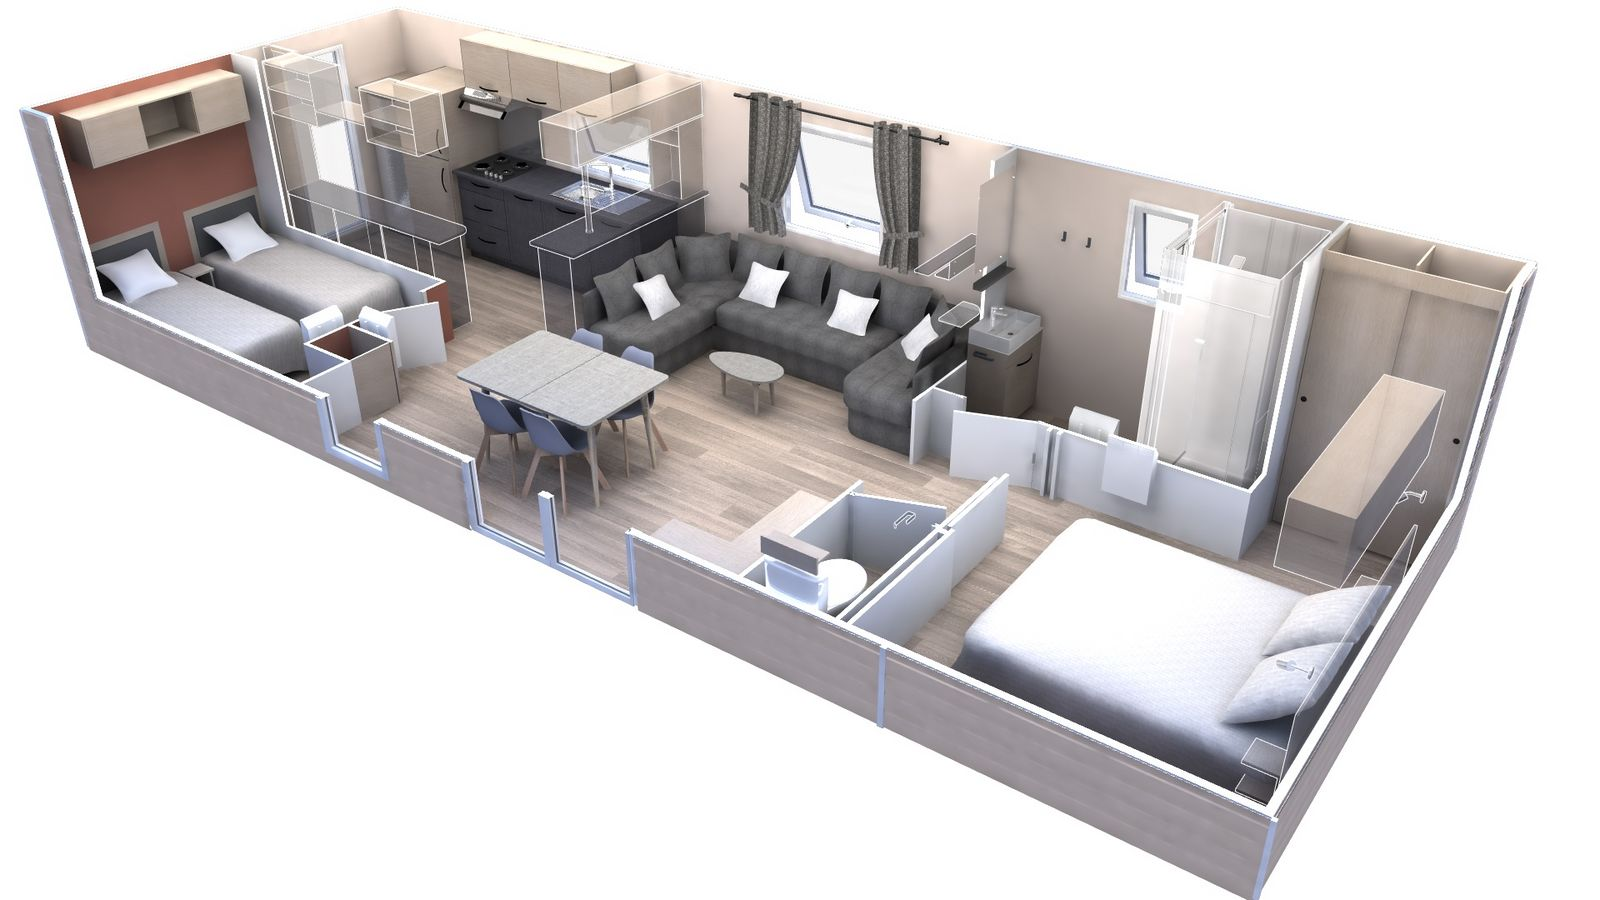 residences trigano-expression-2chambres-plan-3D